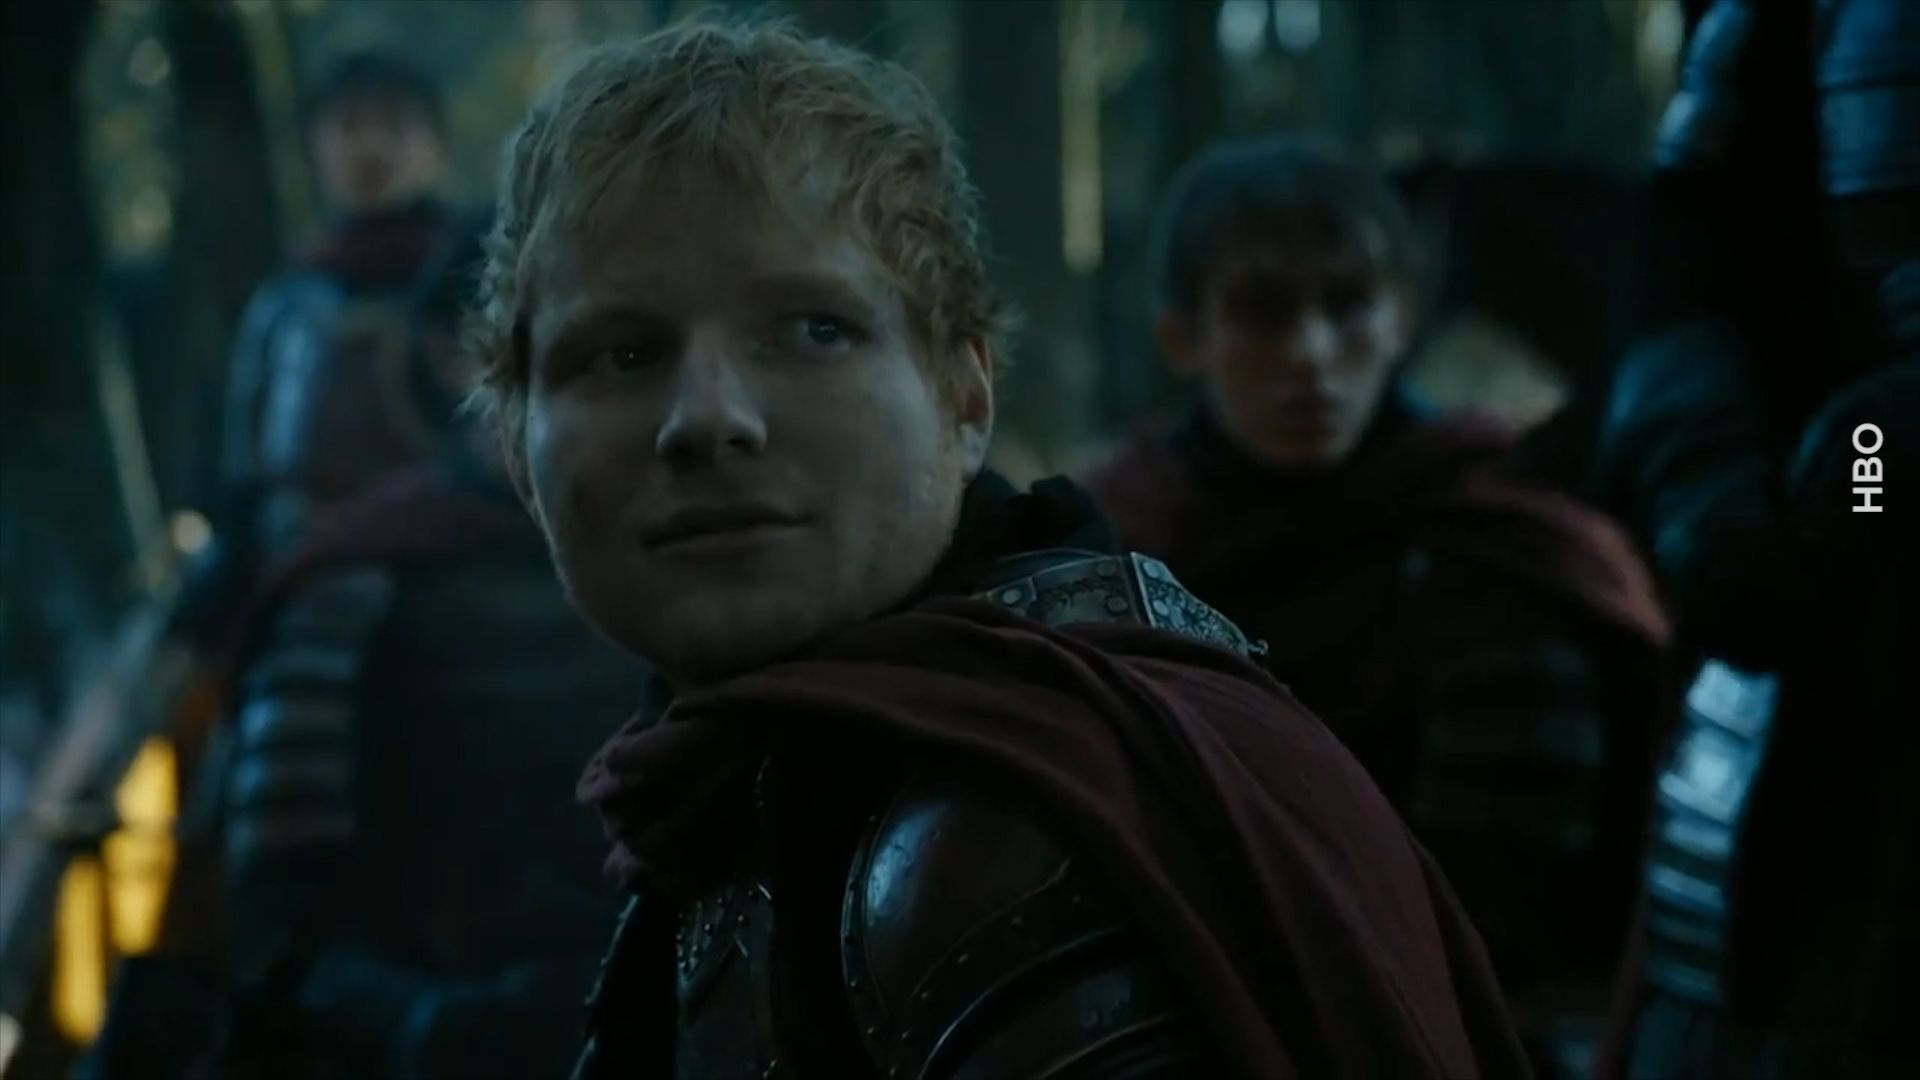 Game Of Thrones Season 8, Episode 1 Revealed What Happened To Ed Sheeran's Soldier (And It's Very, Very Gruesome)